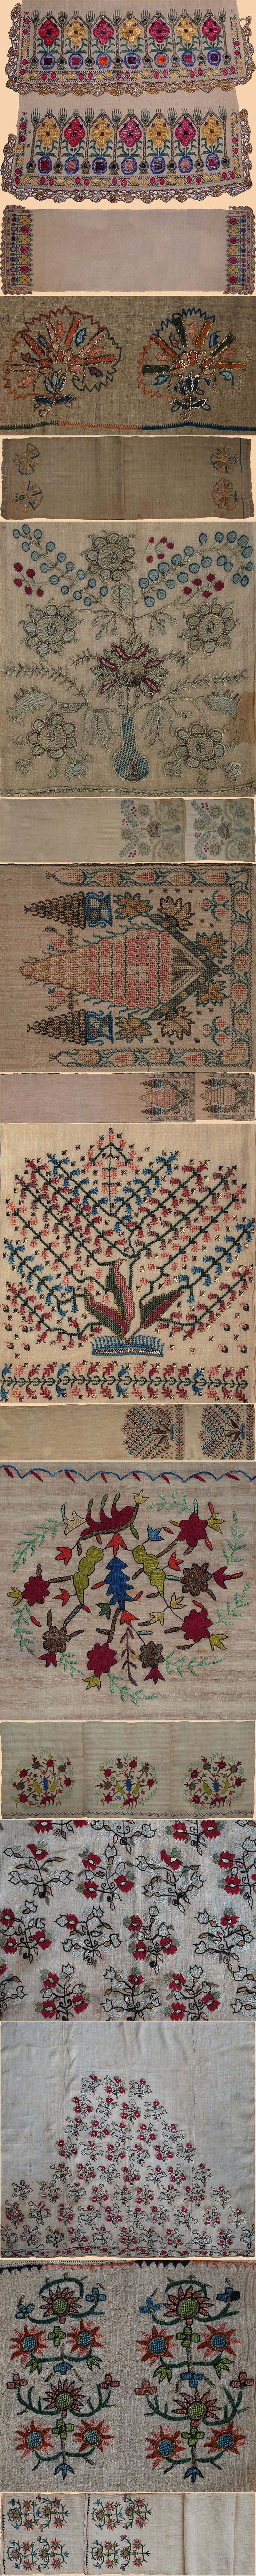 Antique Turkish Textile, Silk Embroidery with silver thread on Linen. Ottoman Dynasty 1453-1922A.D